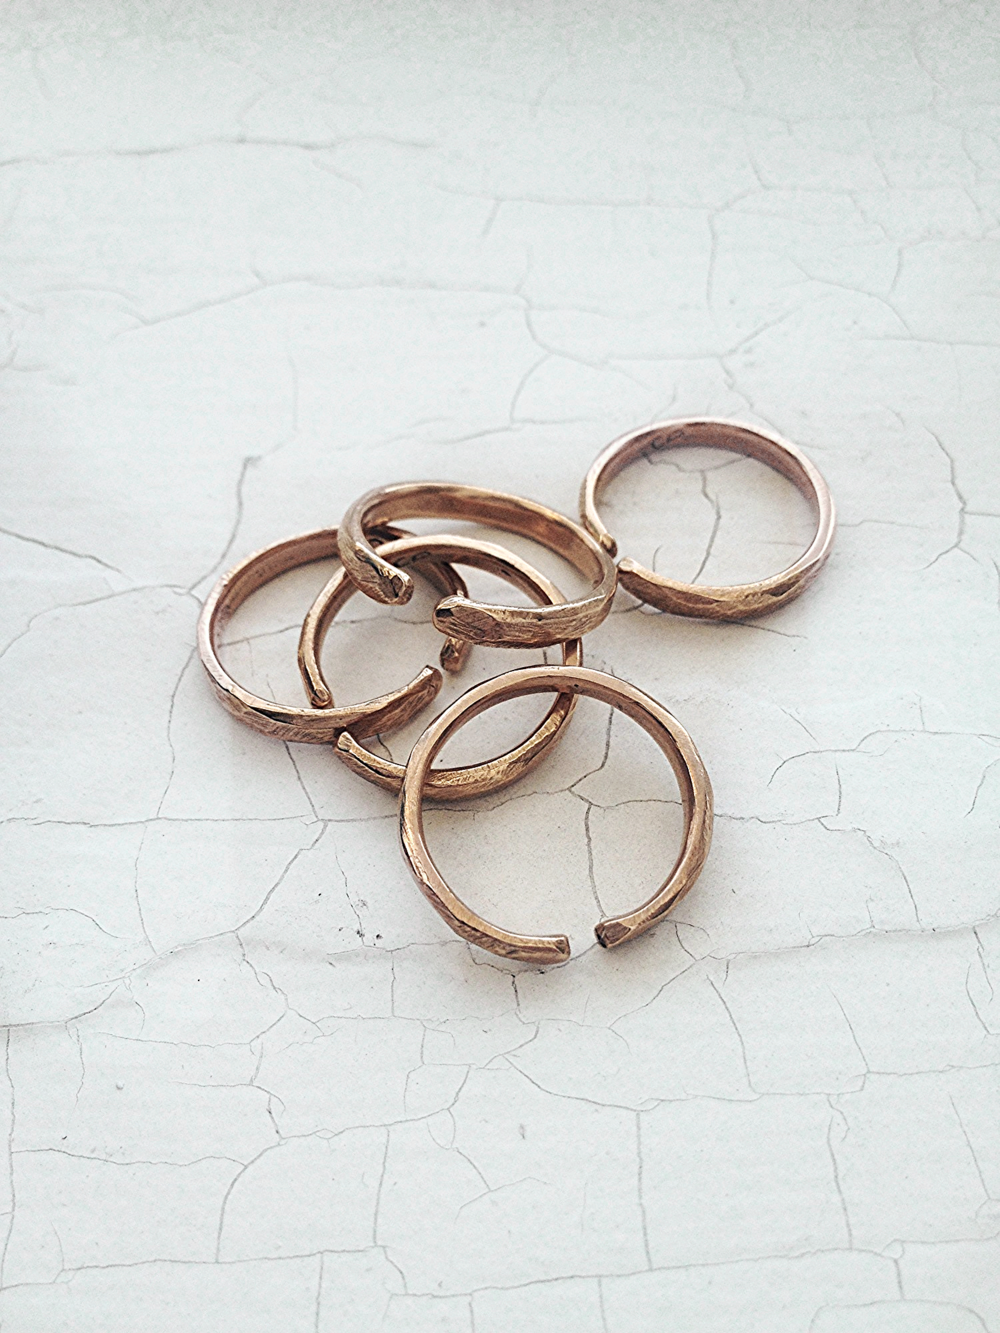 Ajustable Drift Rings in Bronze.